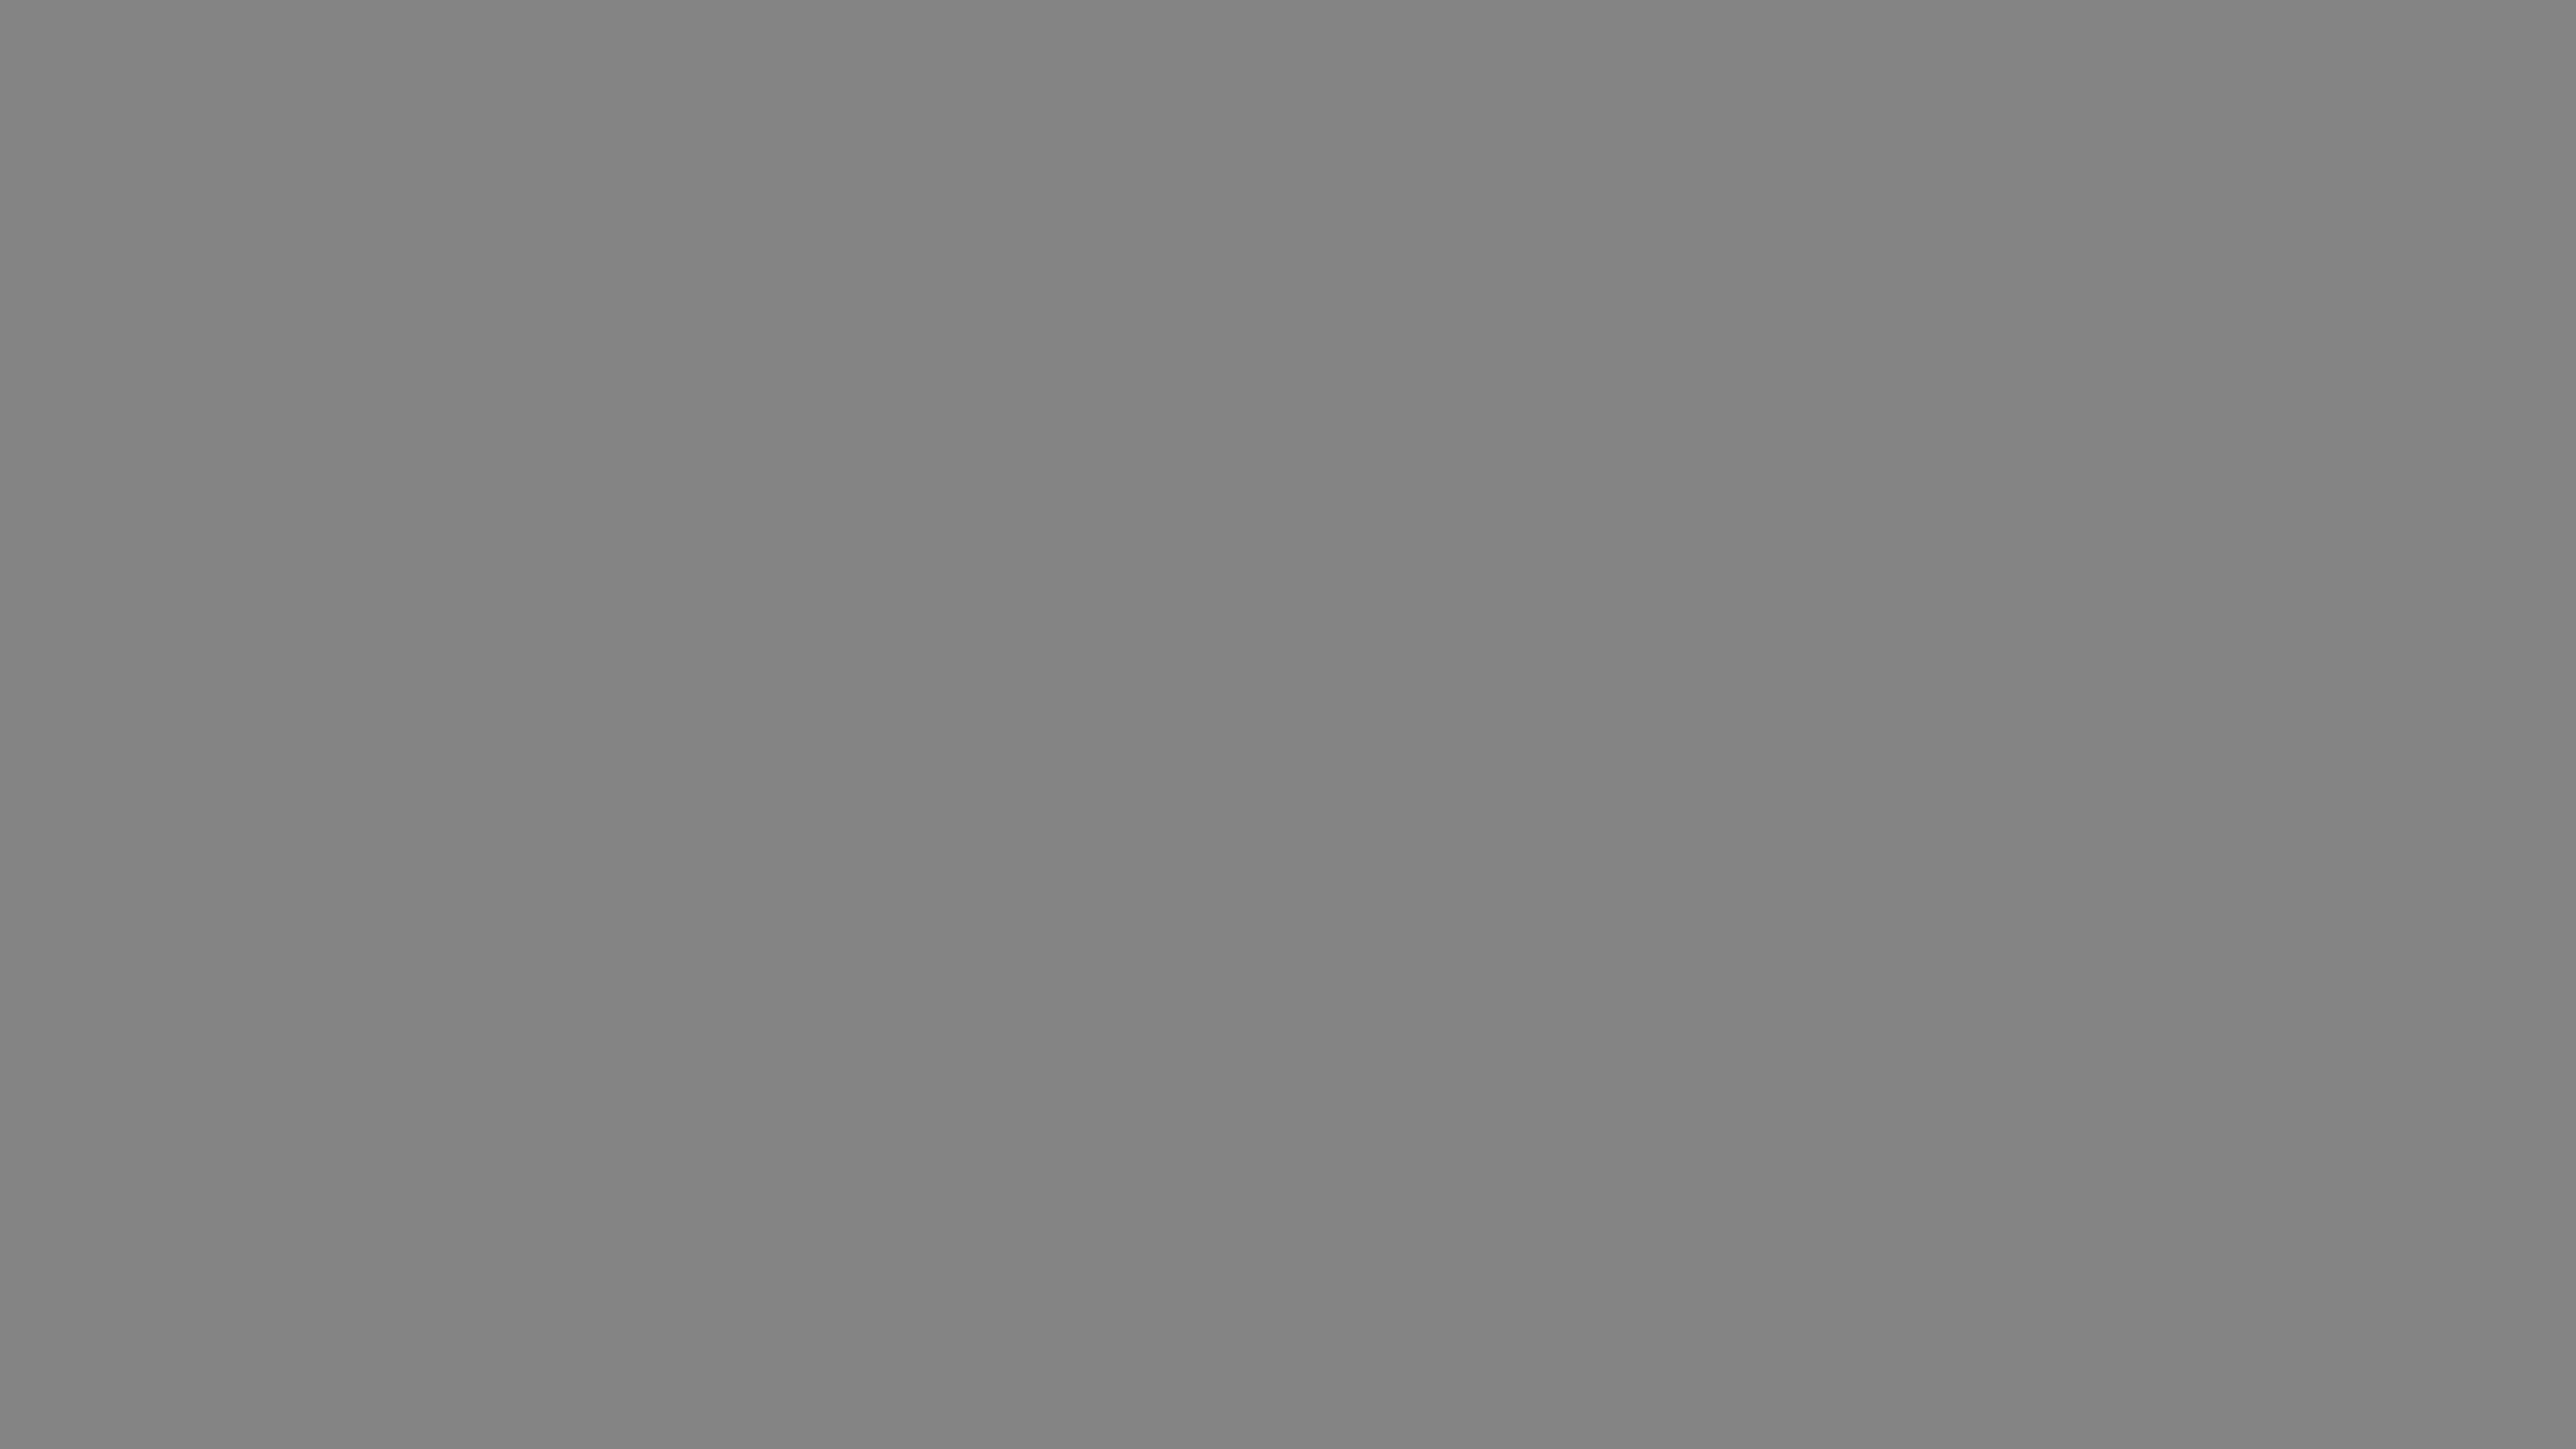 7680x4320 Old Silver Solid Color Background